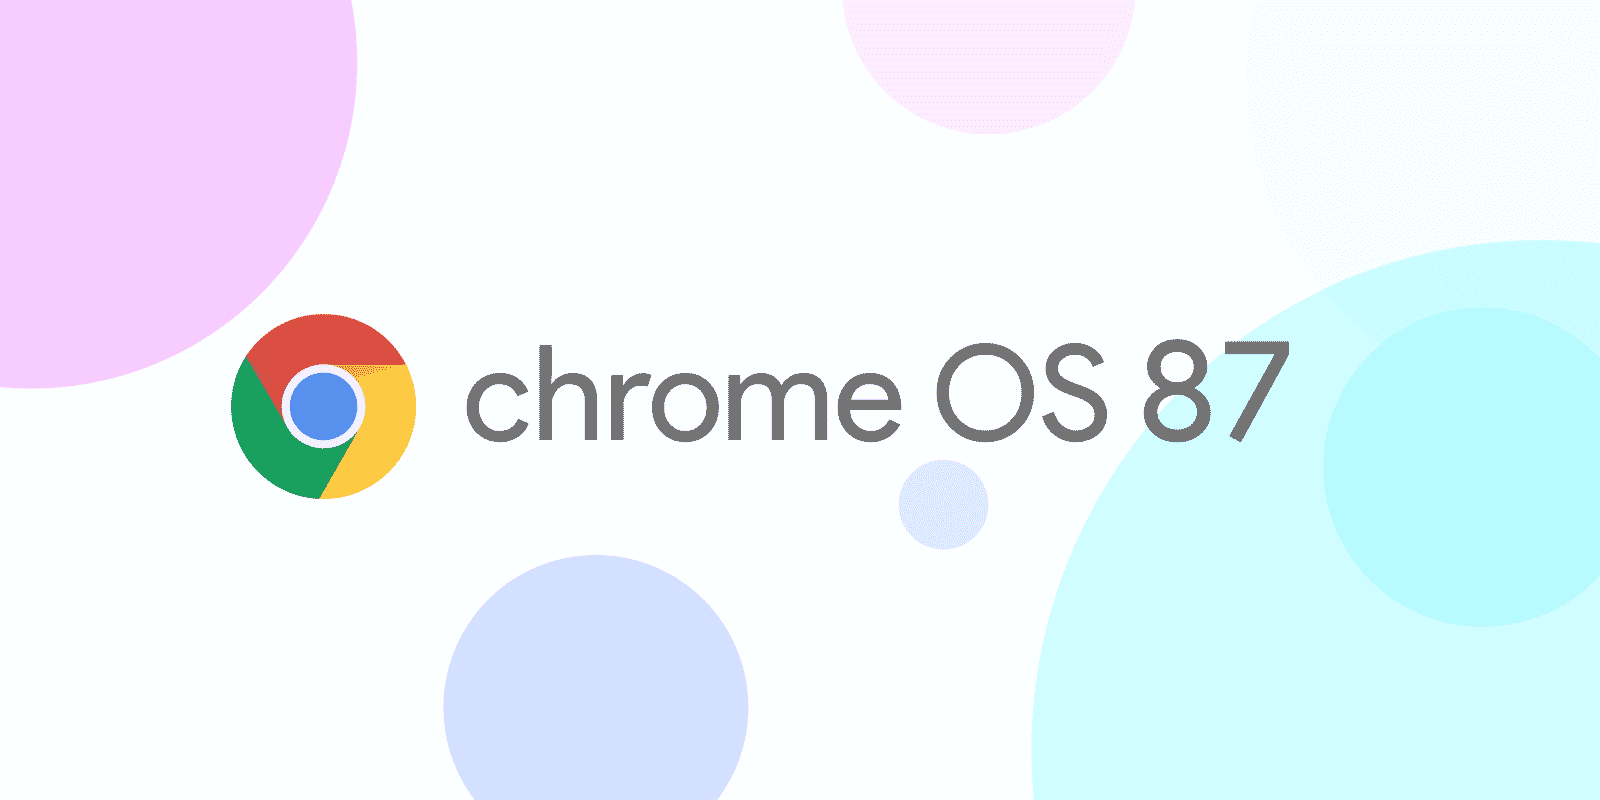 Chrome OS 87 rollout begins in a phased manner